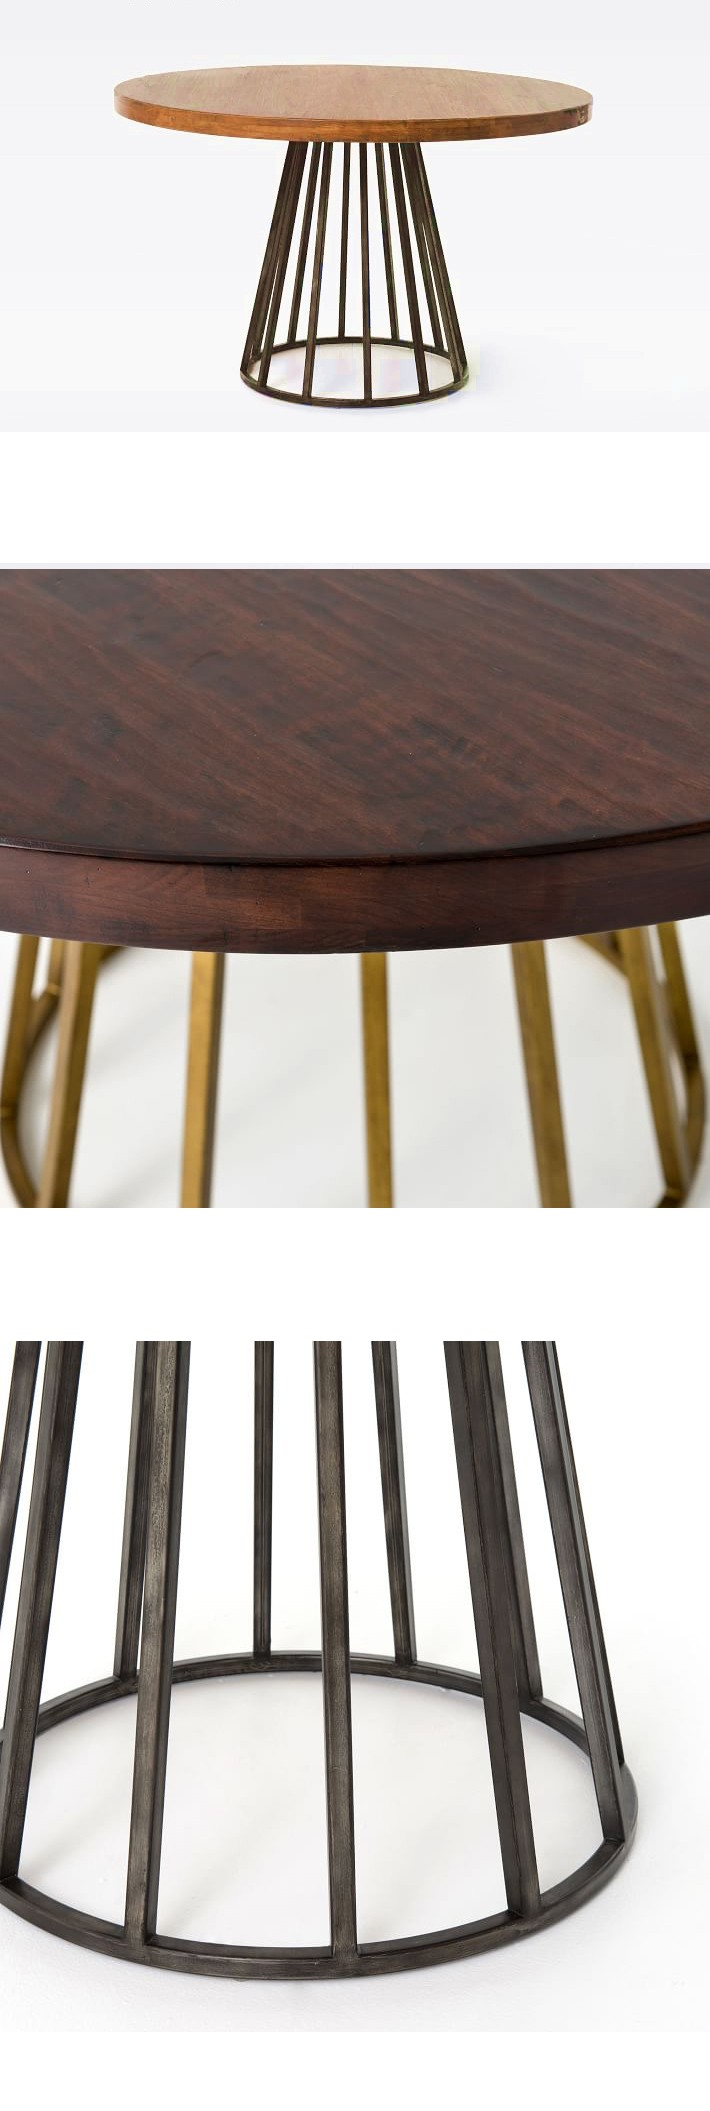 Wooden Round Coffee Dessert Dining Table